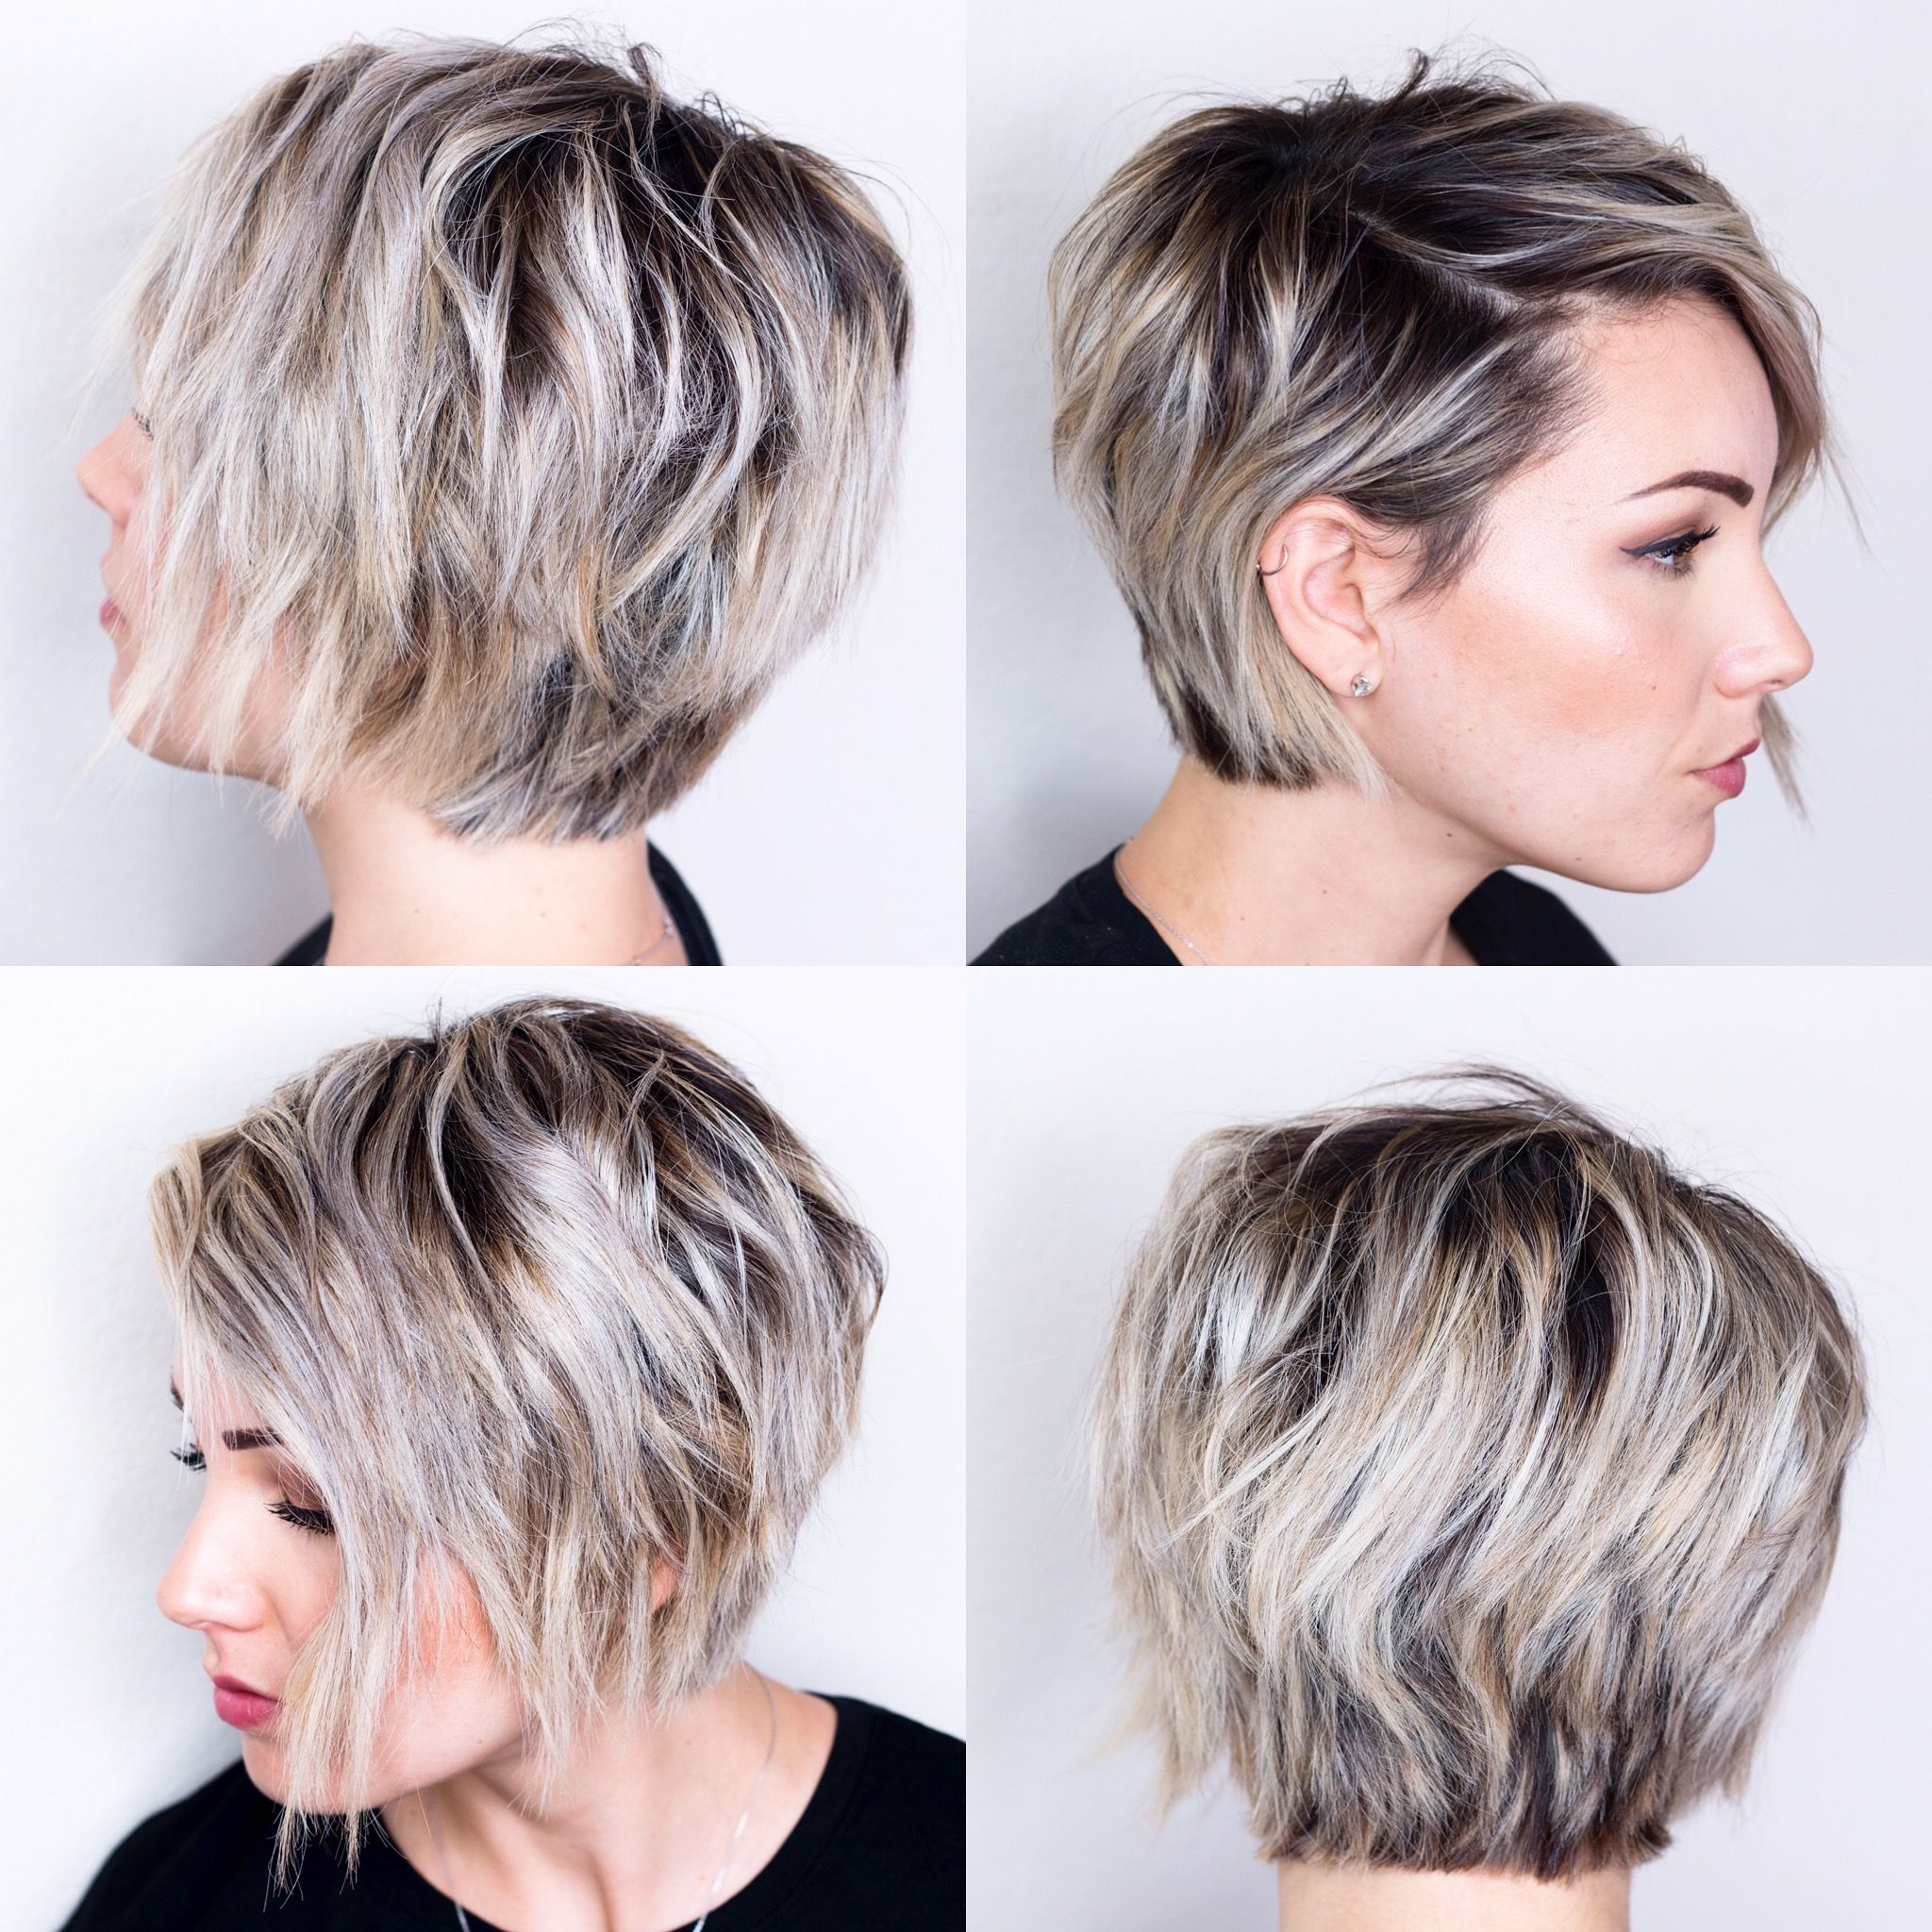 360 View Of Short Hair | H A I R In 2018 | Pinterest | Short Hair Regarding Short Haircuts For Women With Oval Faces (View 13 of 25)